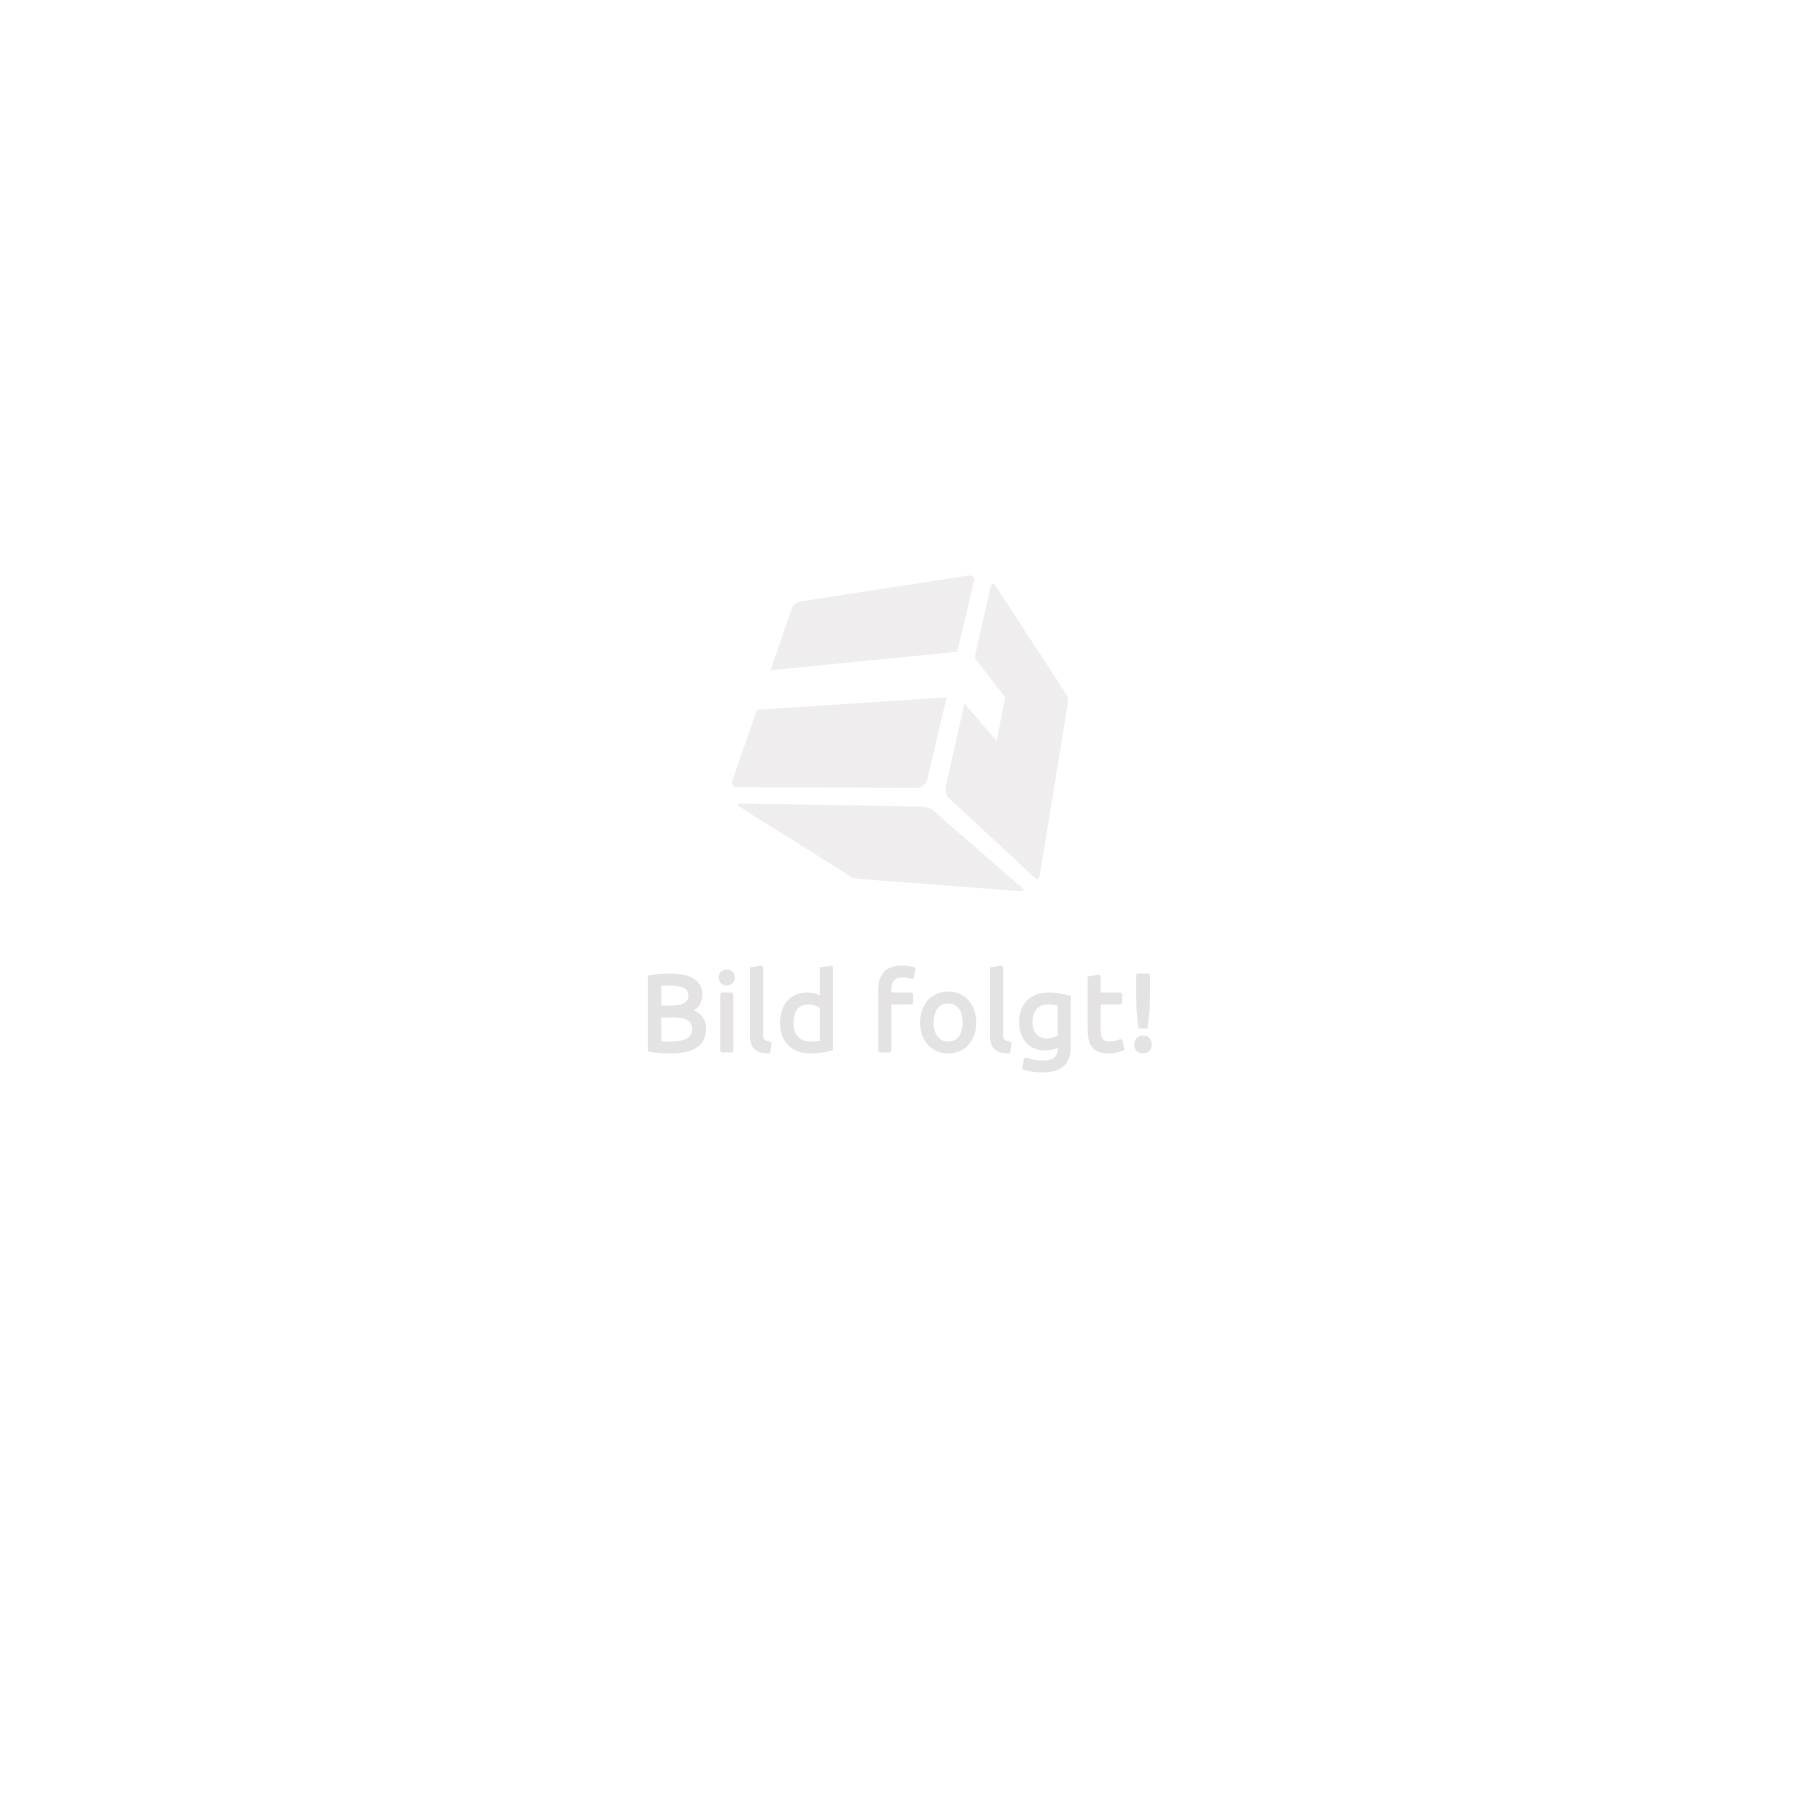 TV wall mount for 32-63 inch (81-160cm) can be tilted spirit level